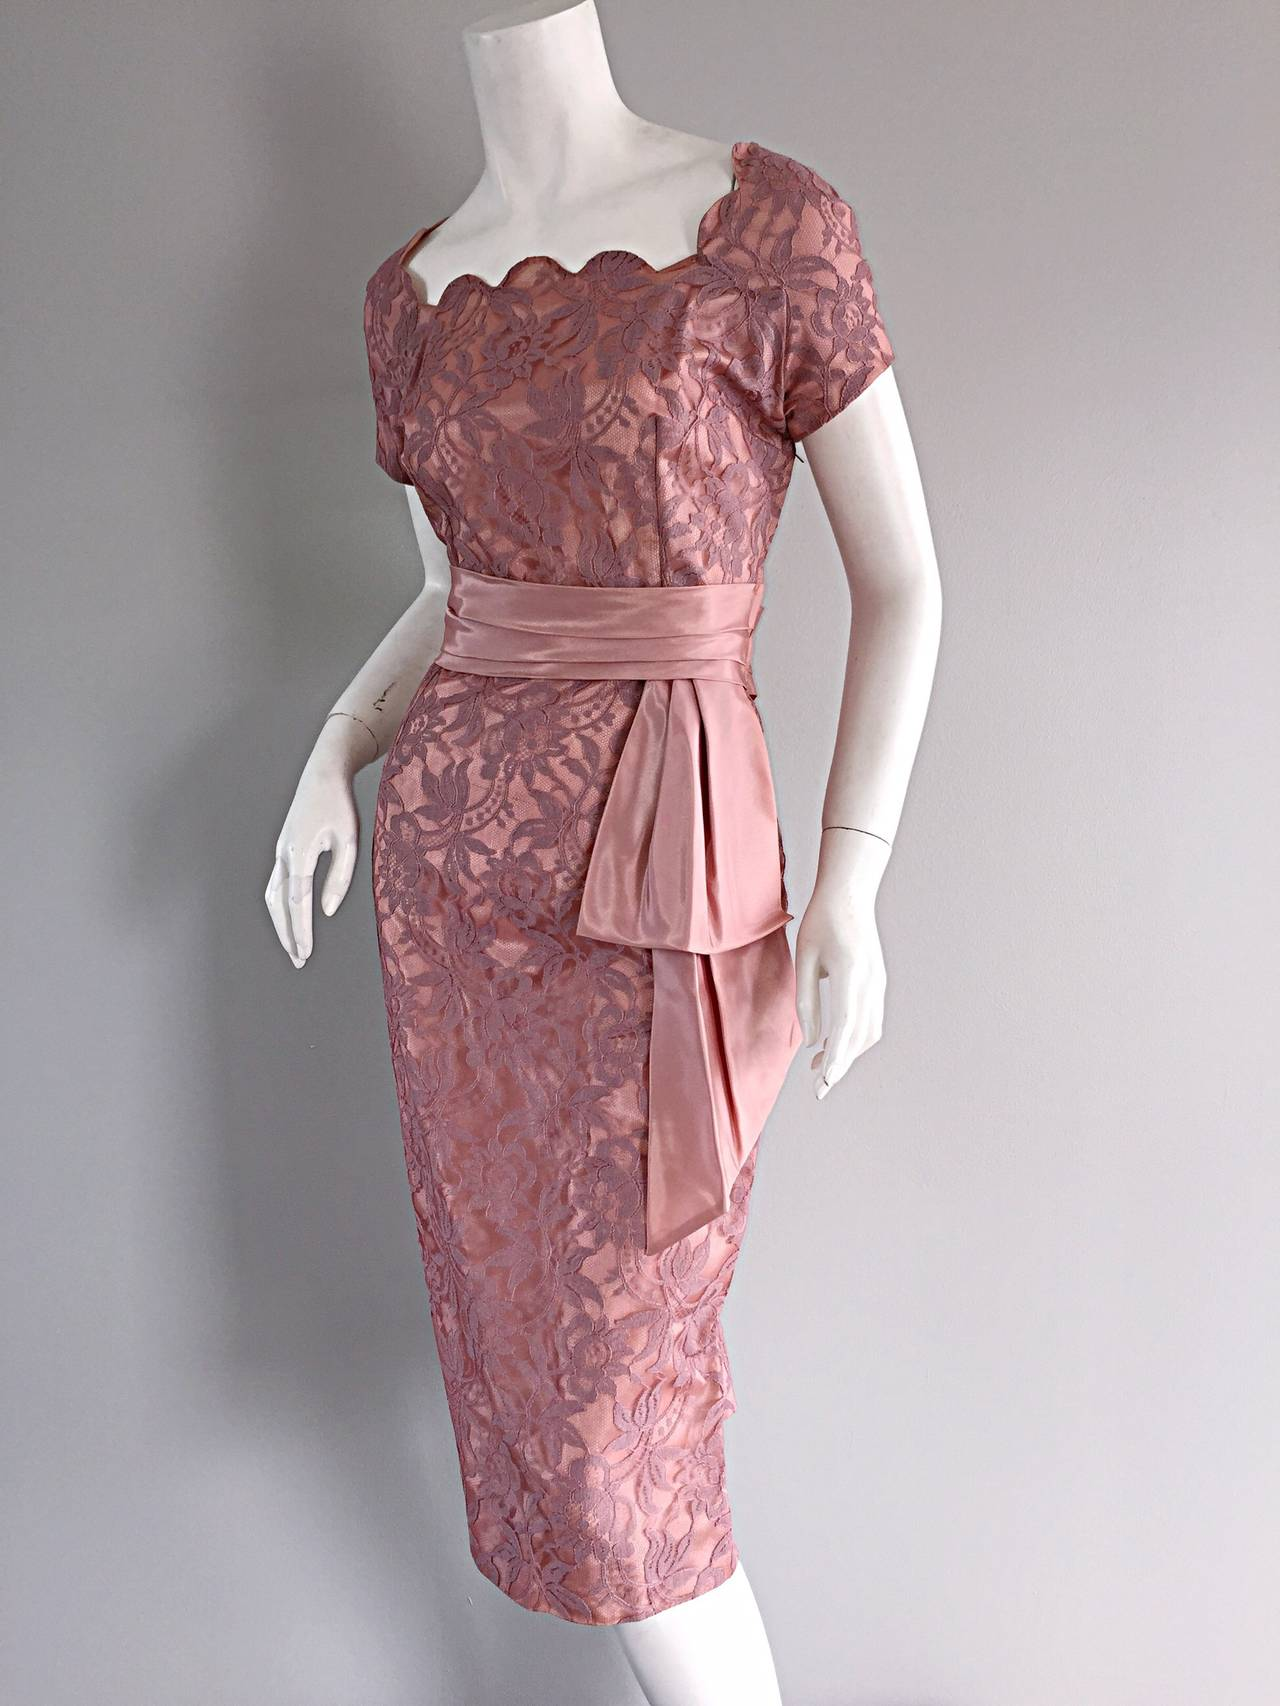 Beautiful Vintage 1950s 50s Pink Lace Wiggle Dress w/ Scalloped Edges 6